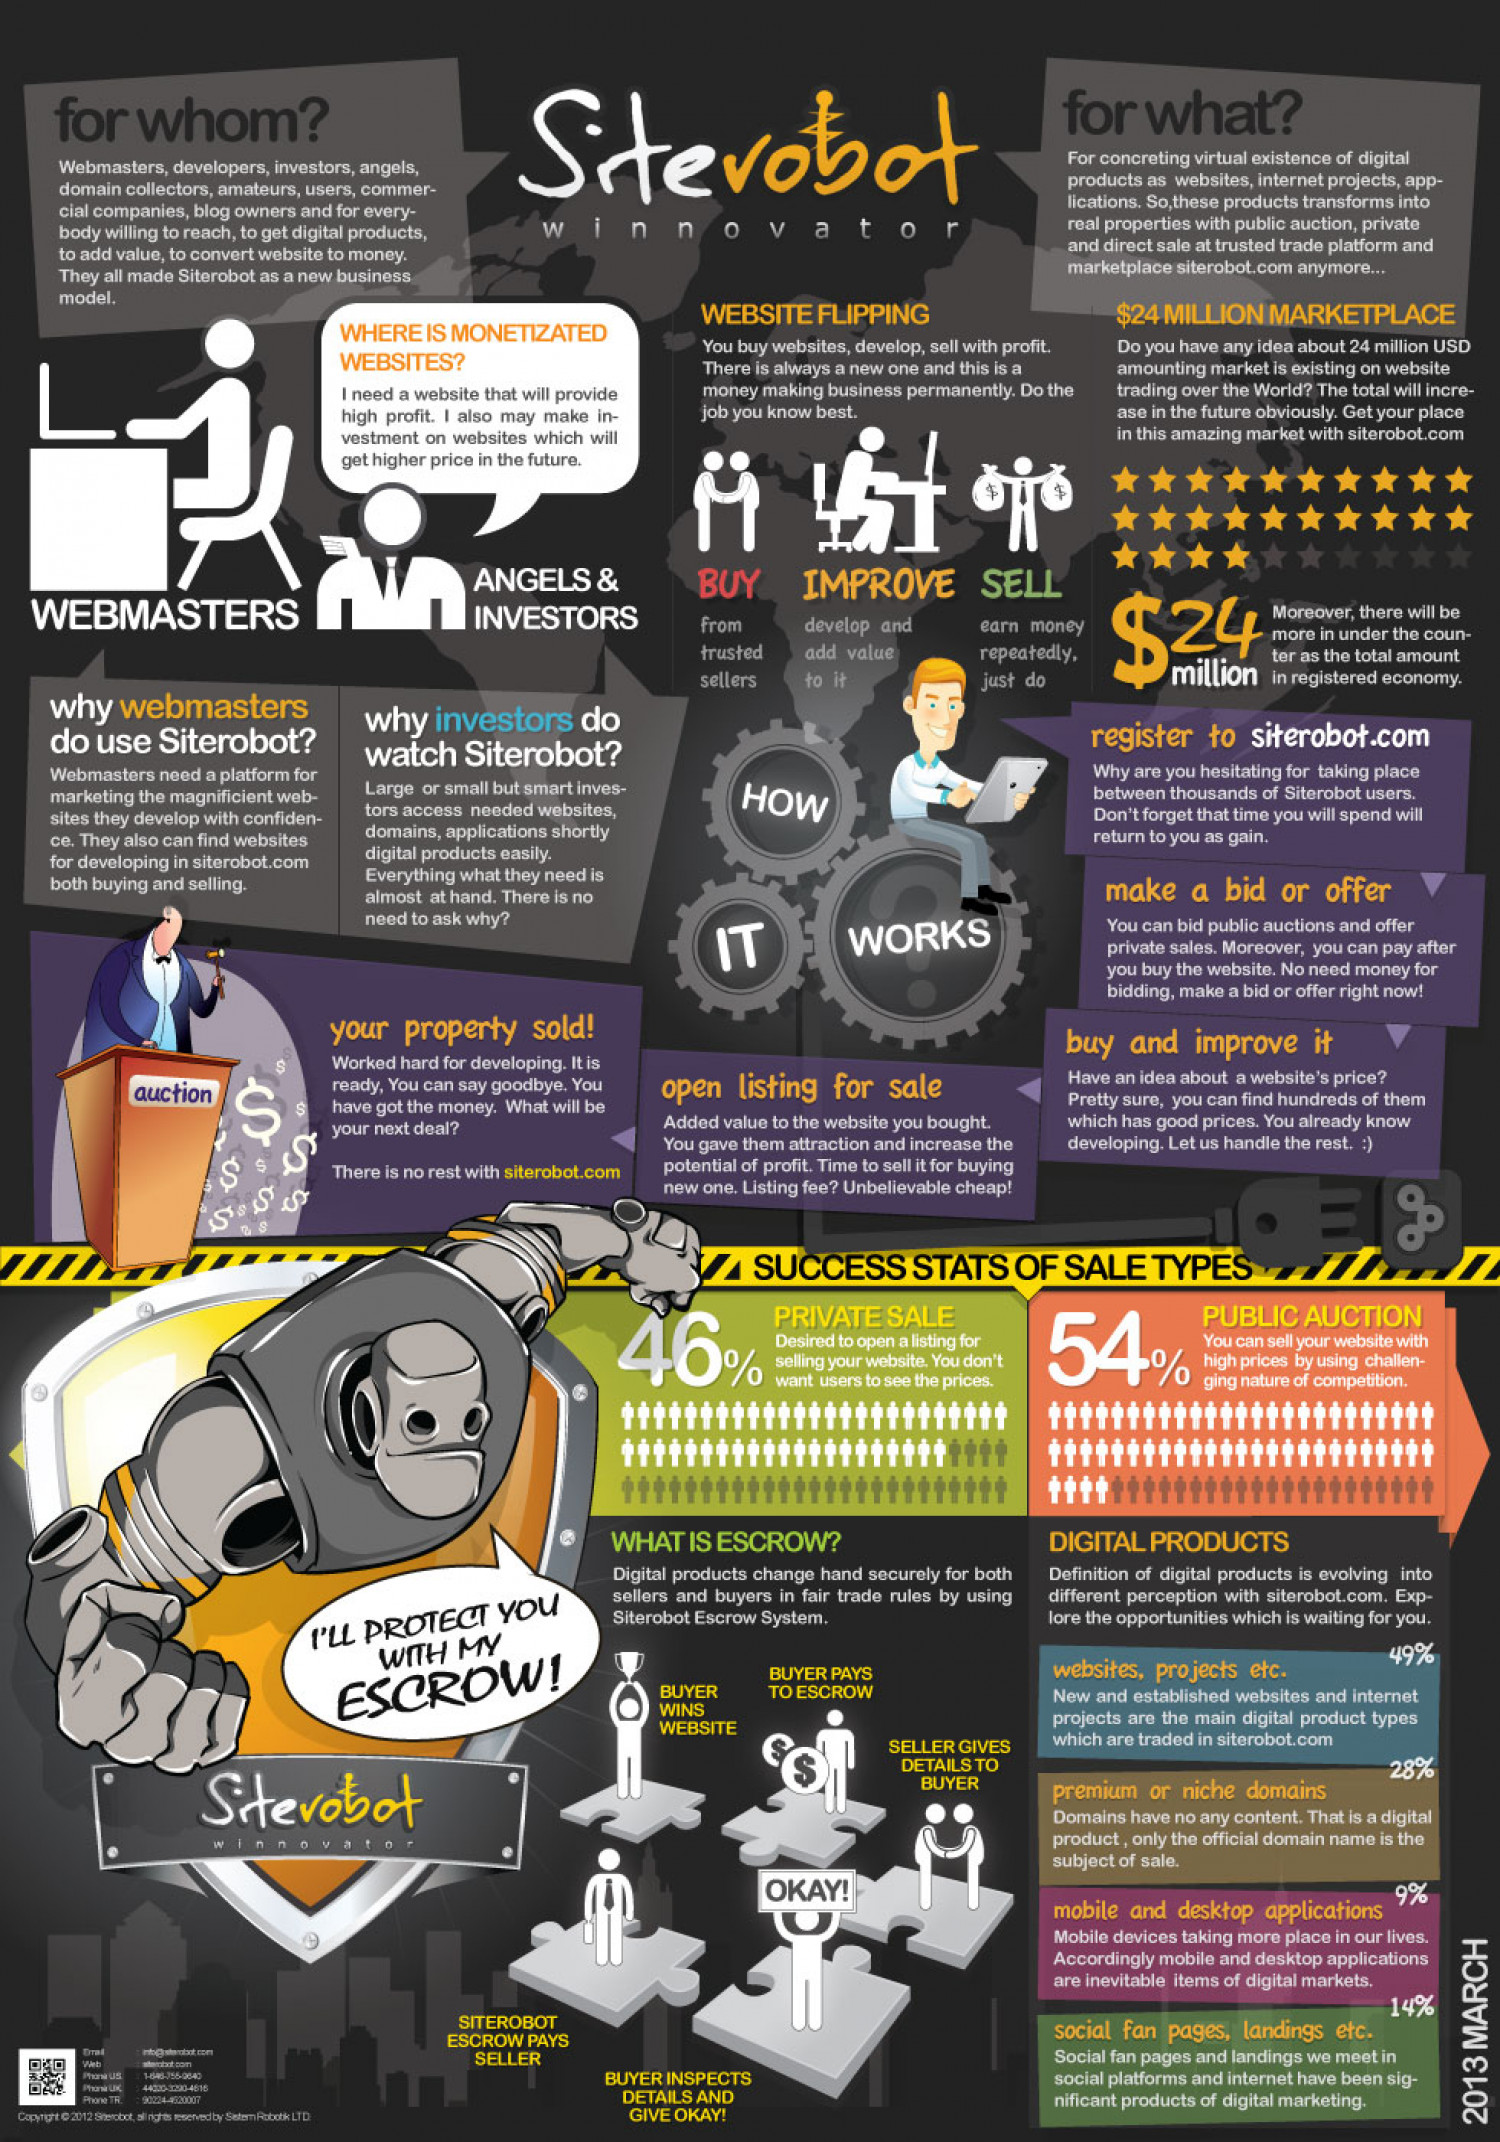 Siterobot the Winnovator Infographic